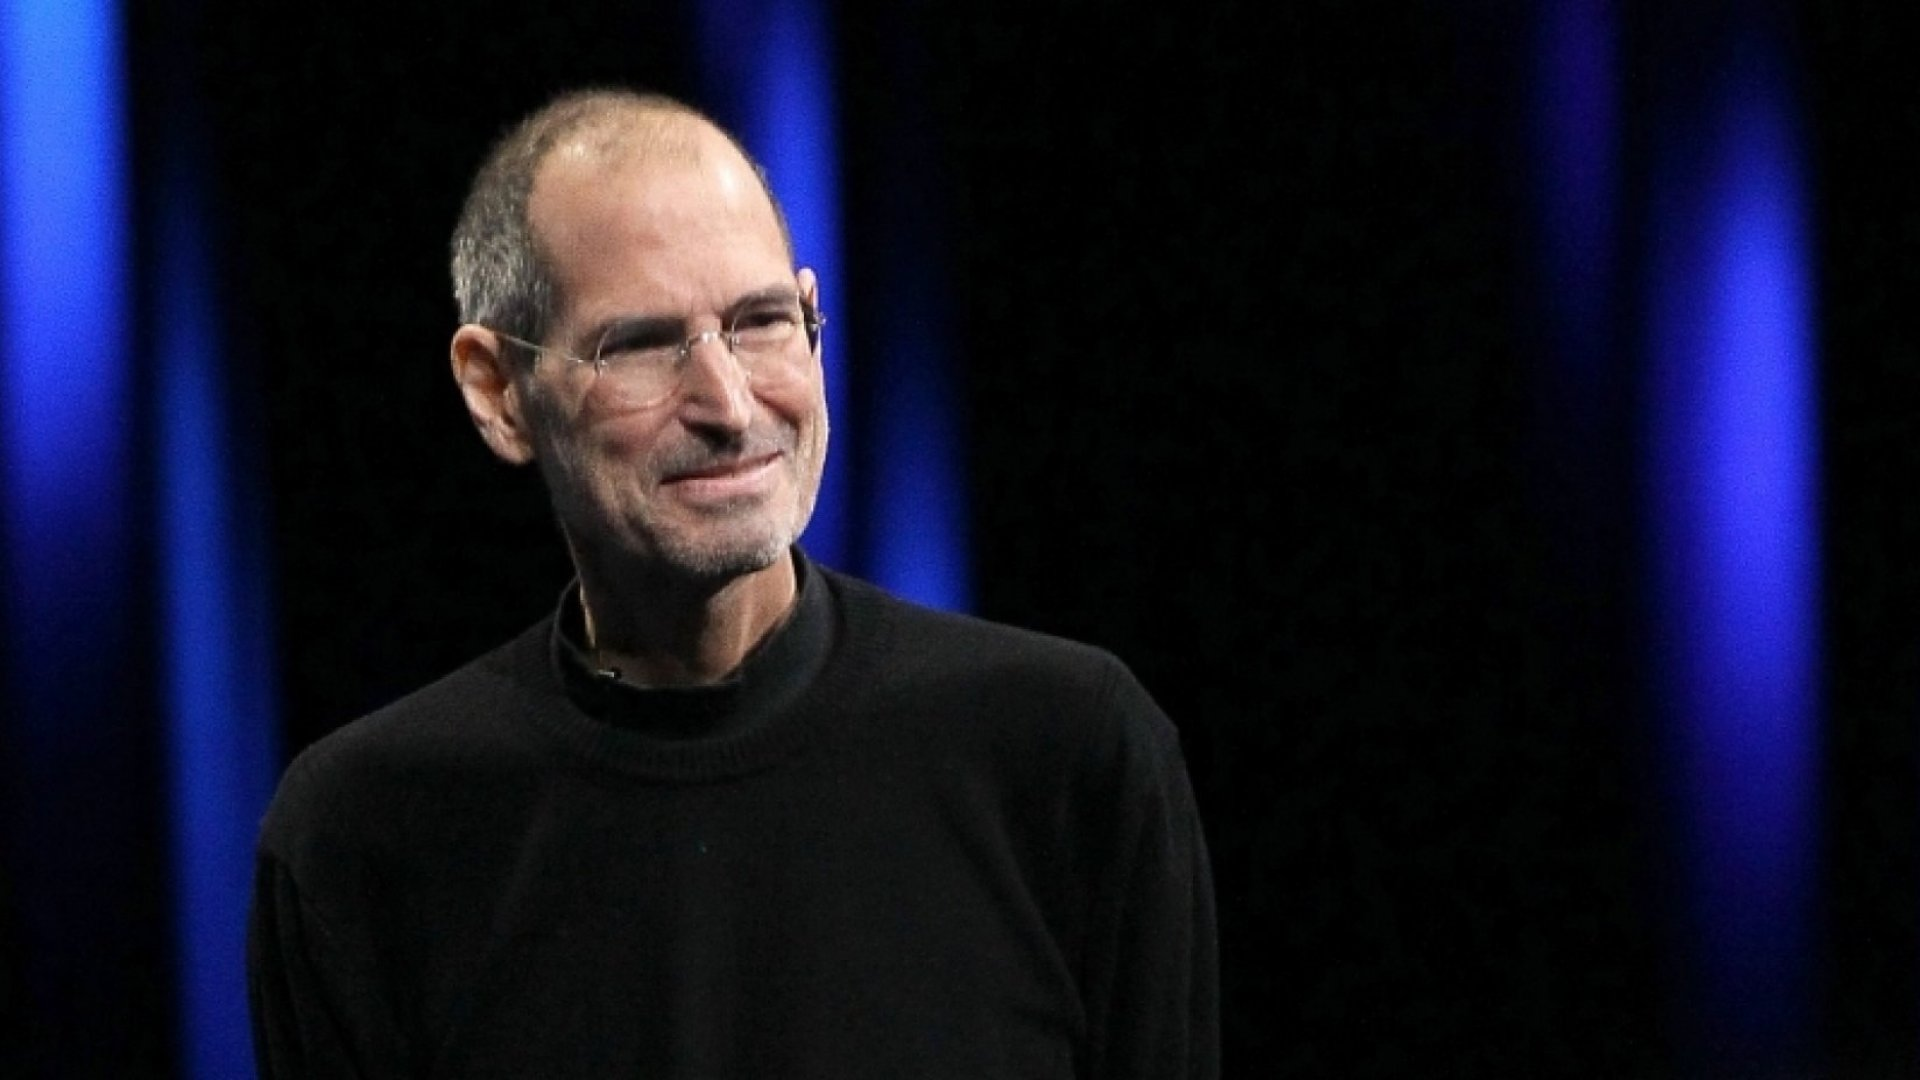 Steve Jobs: 19 Inspiring Power Quotes for Success